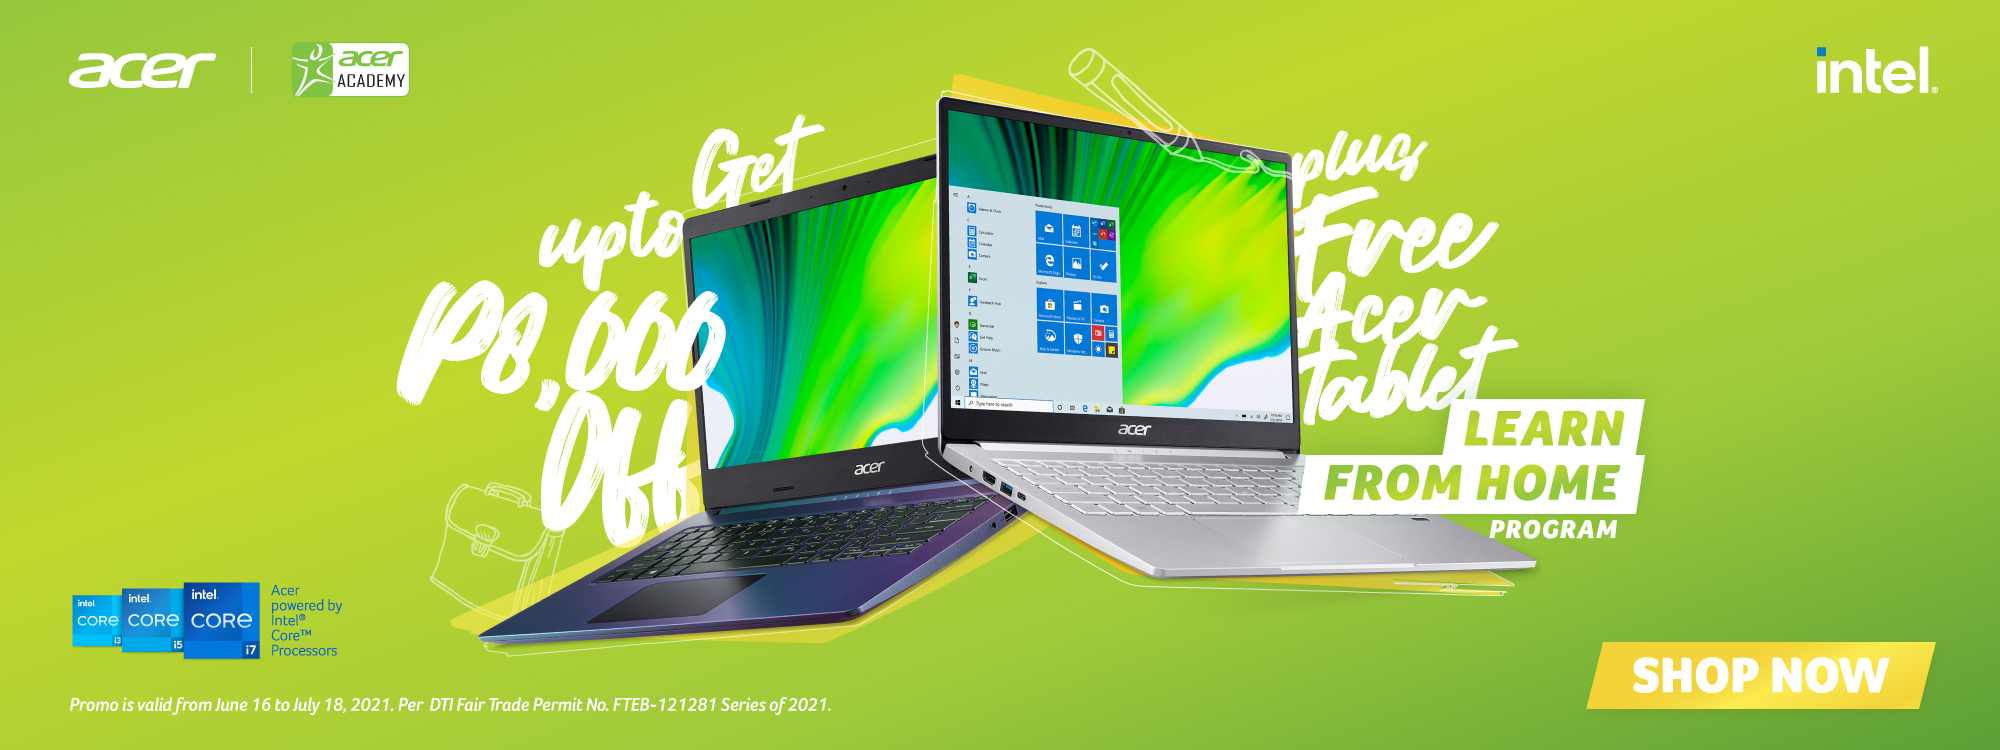 KathNiel campaigns for Acer's Learn from Home Program